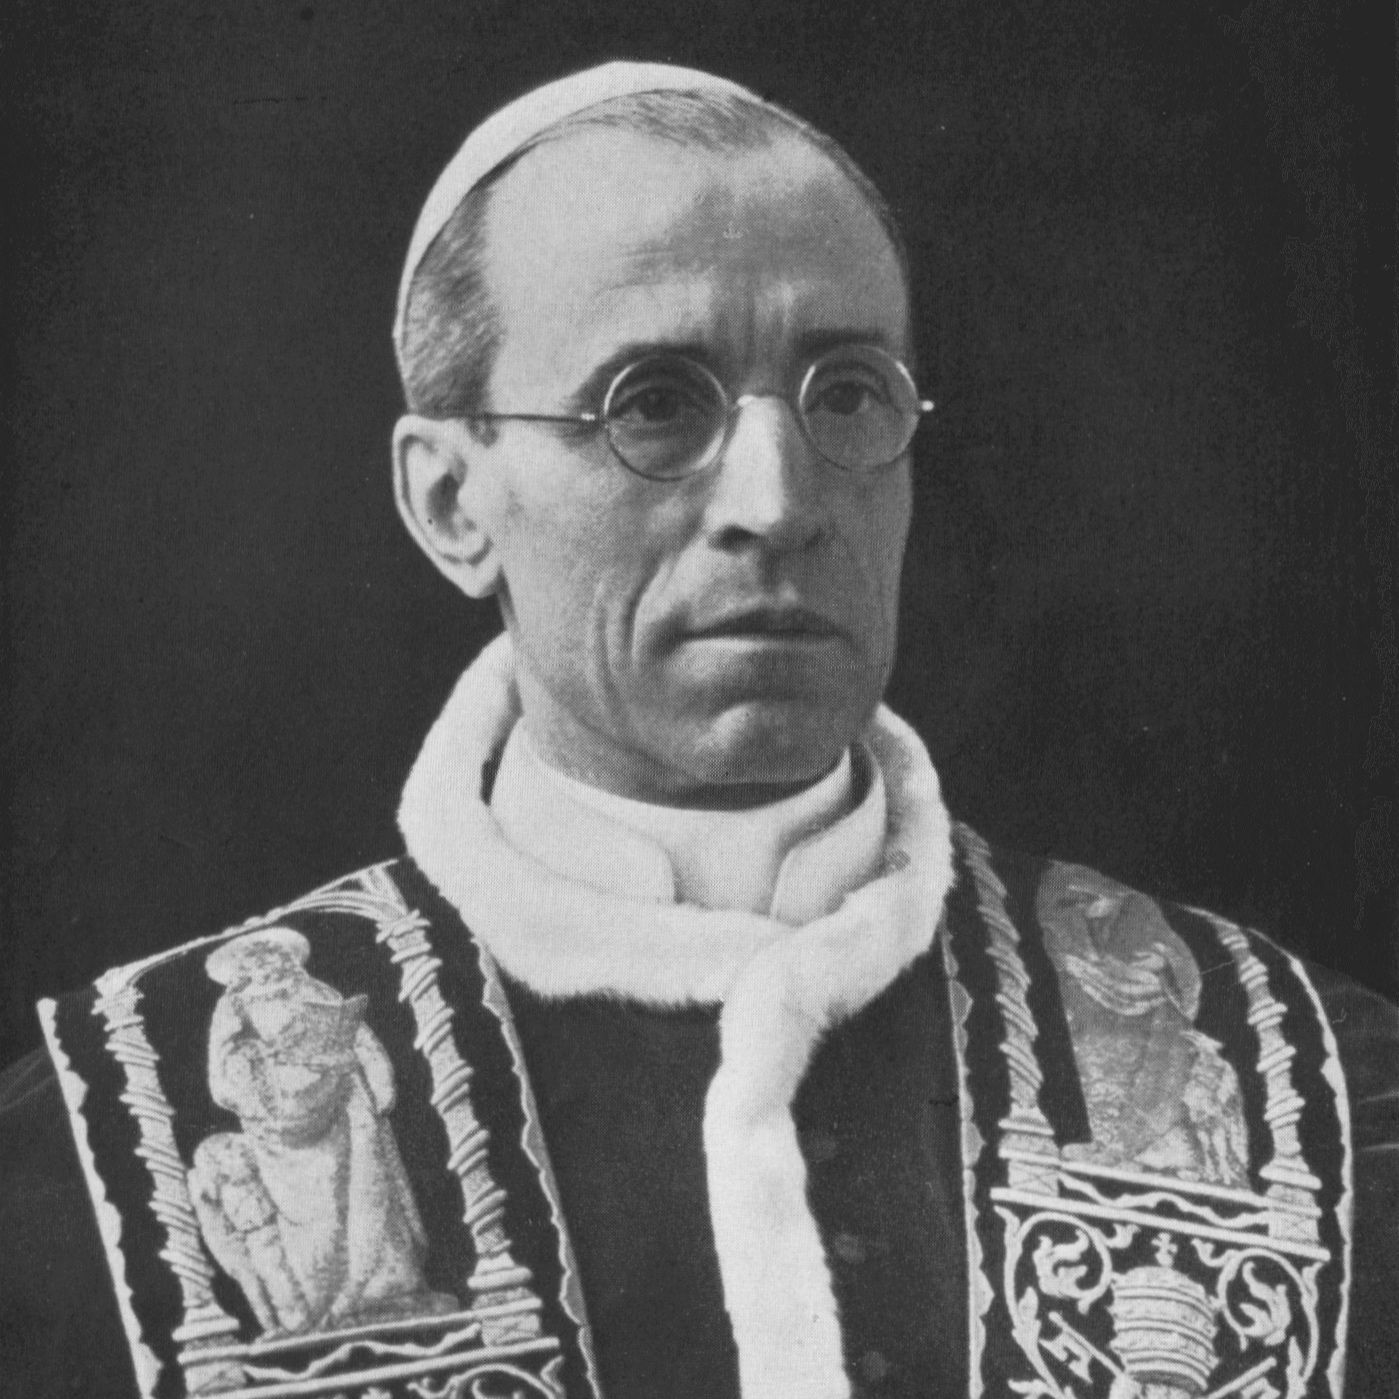 Pope Pius XII - Letter on Centenary of Newman's Conversion12 April 1945Newman 'gave up his whole life to the truth' (Juvenal, Satires); all his efforts, all his untiring labours, were dedicated to that end. A time came when the beauty of Catholic teaching revealed itself clearly to his longing eyes; with that, no obstacle of any kind—his old prejudices, loss of prospects, the protests of his friends—could hold him back; nothing must stand between him and full adherence to the truth he had now mastered. He held to it ever afterwards with unshaken consistency, made it the guiding principle of his whole life, found in it, as in nothing else, full contentment of mind.